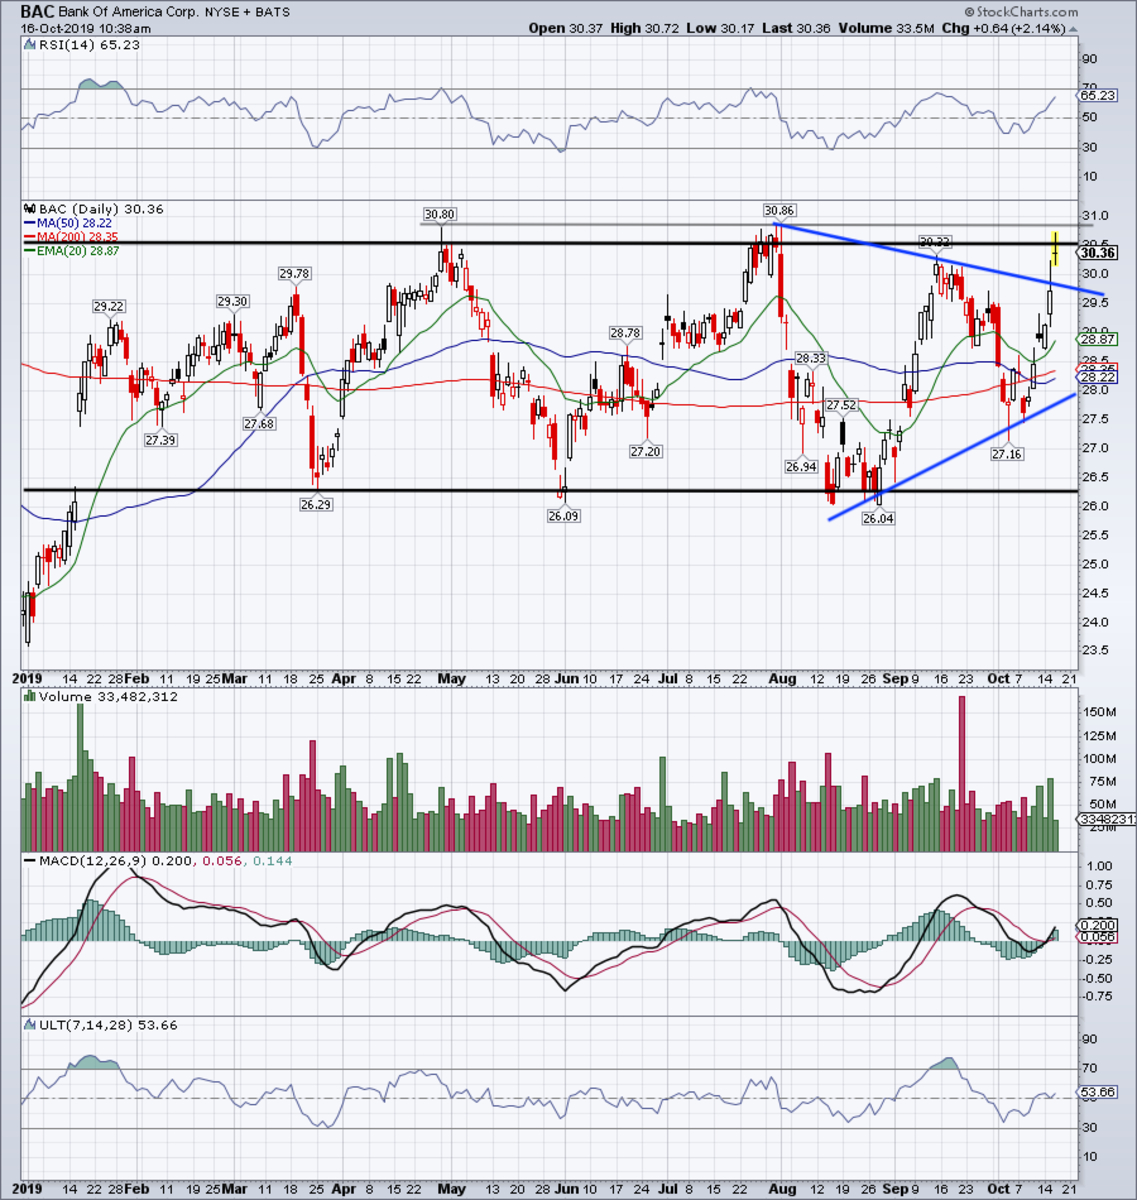 Daily chart of Bank of America stock.